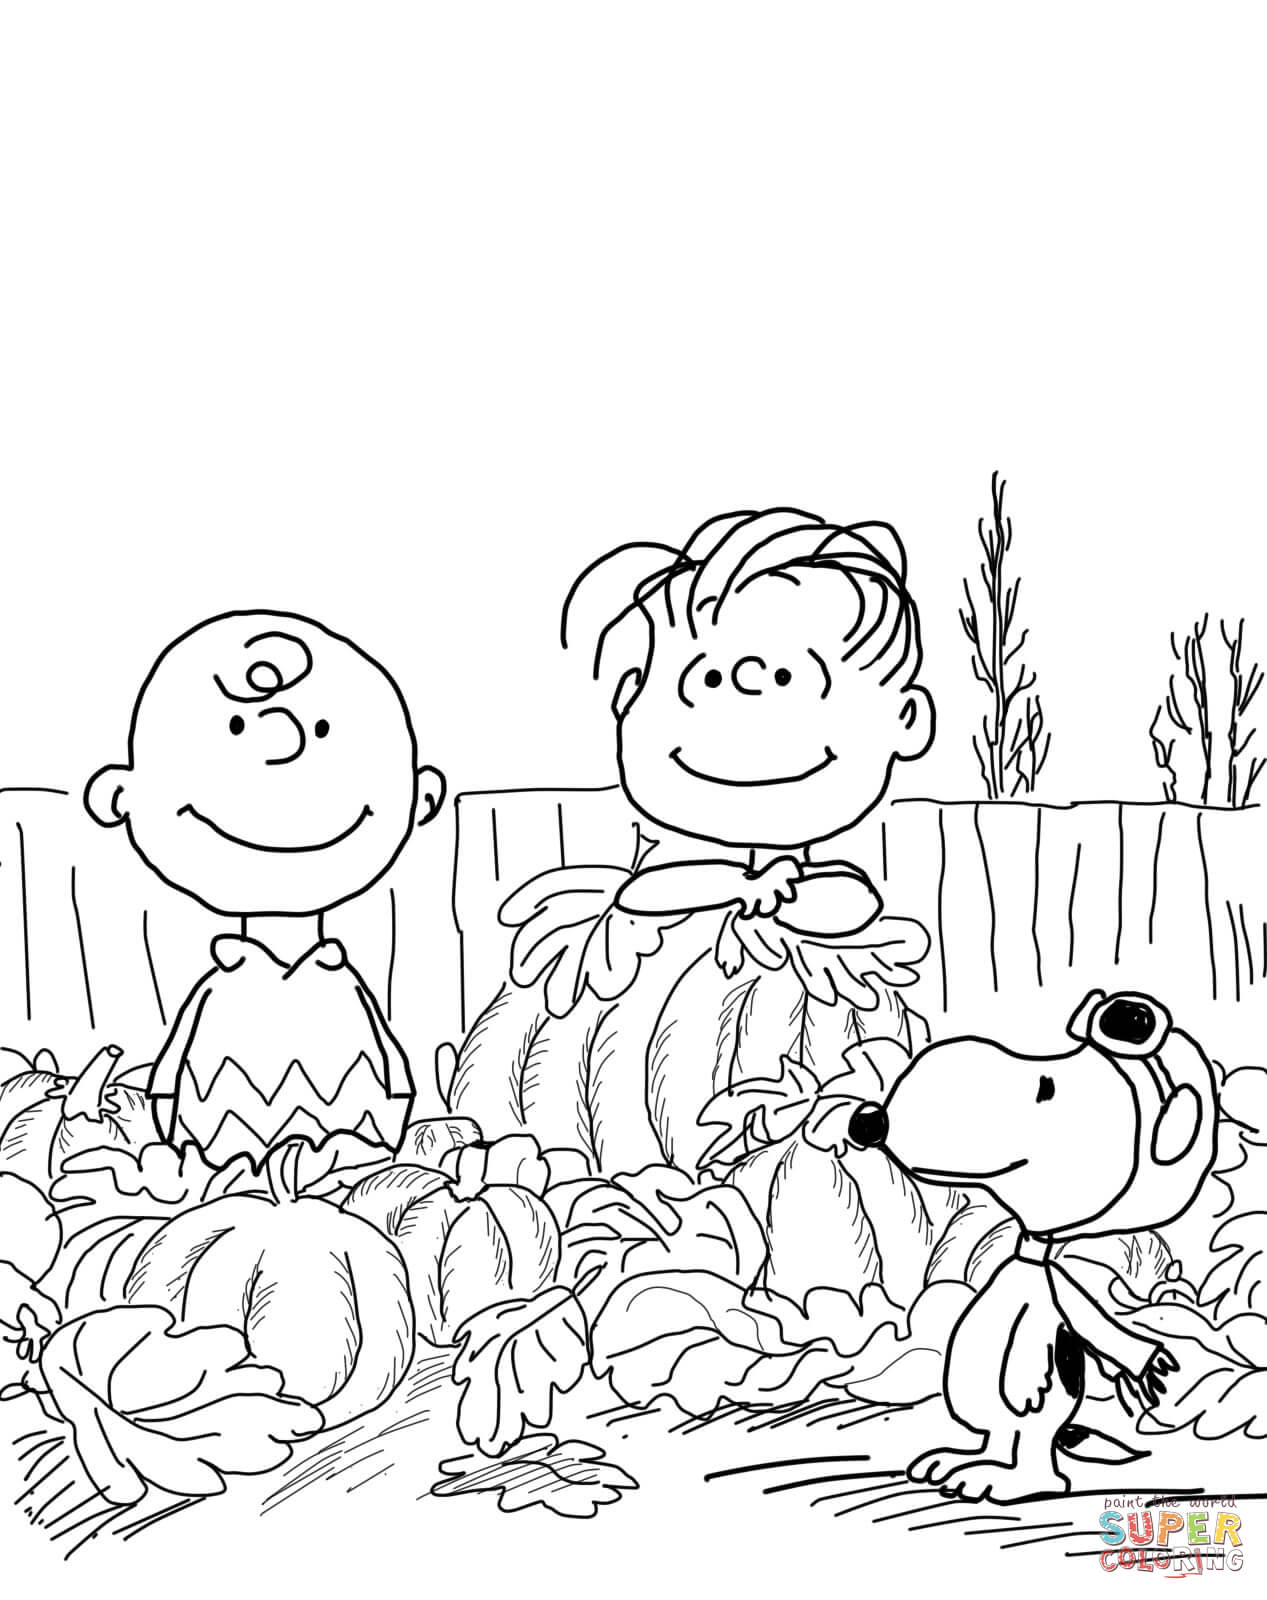 Merry Christmas Charlie Brown Coloring Pages With Tree Page Free Printable